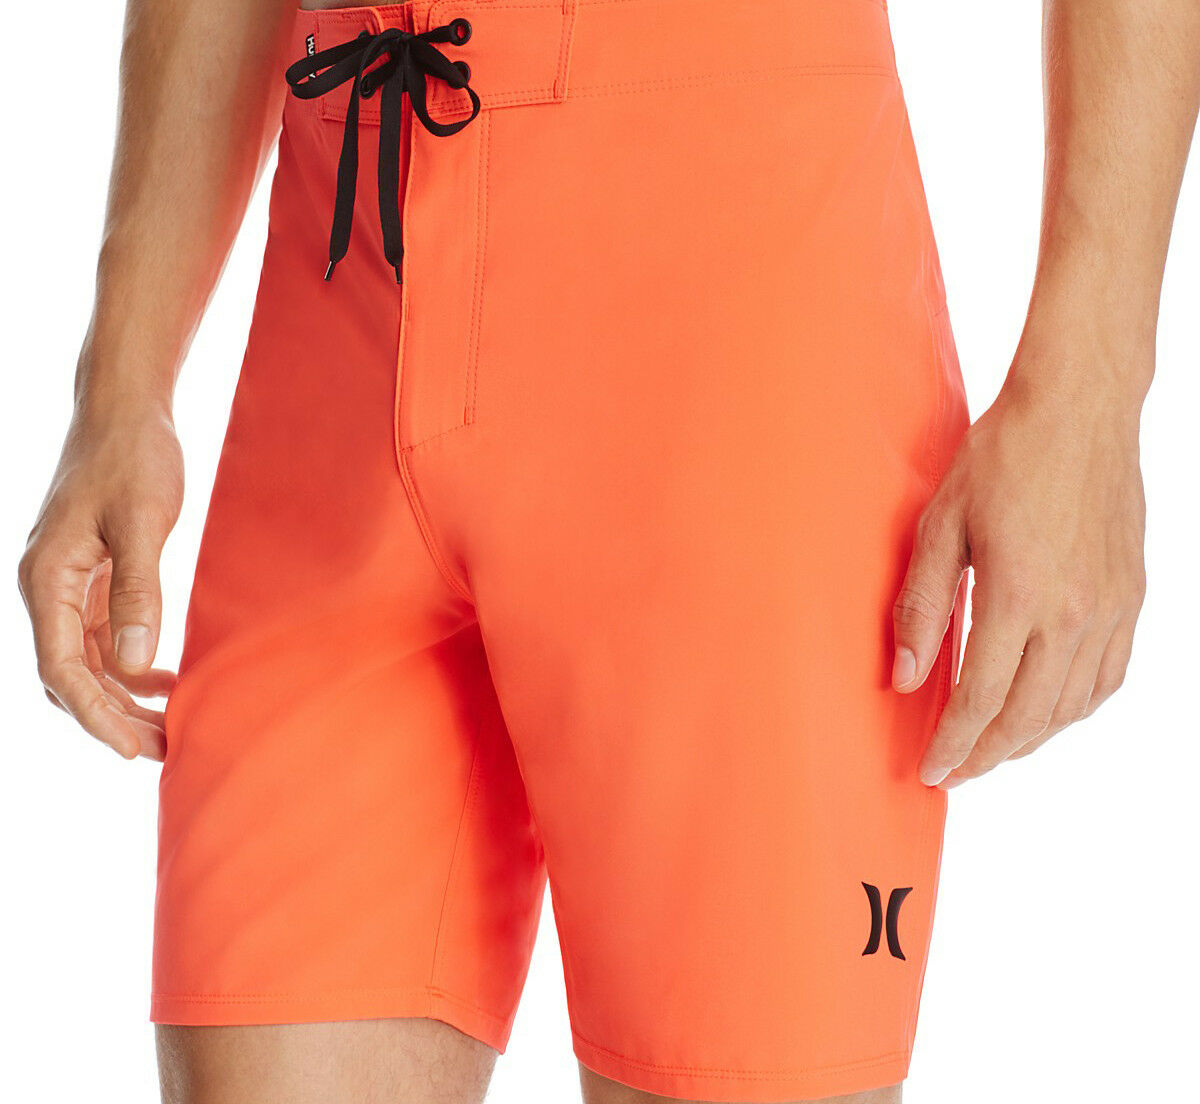 Hurley One and Only Boardshort (32) Bright Crimson